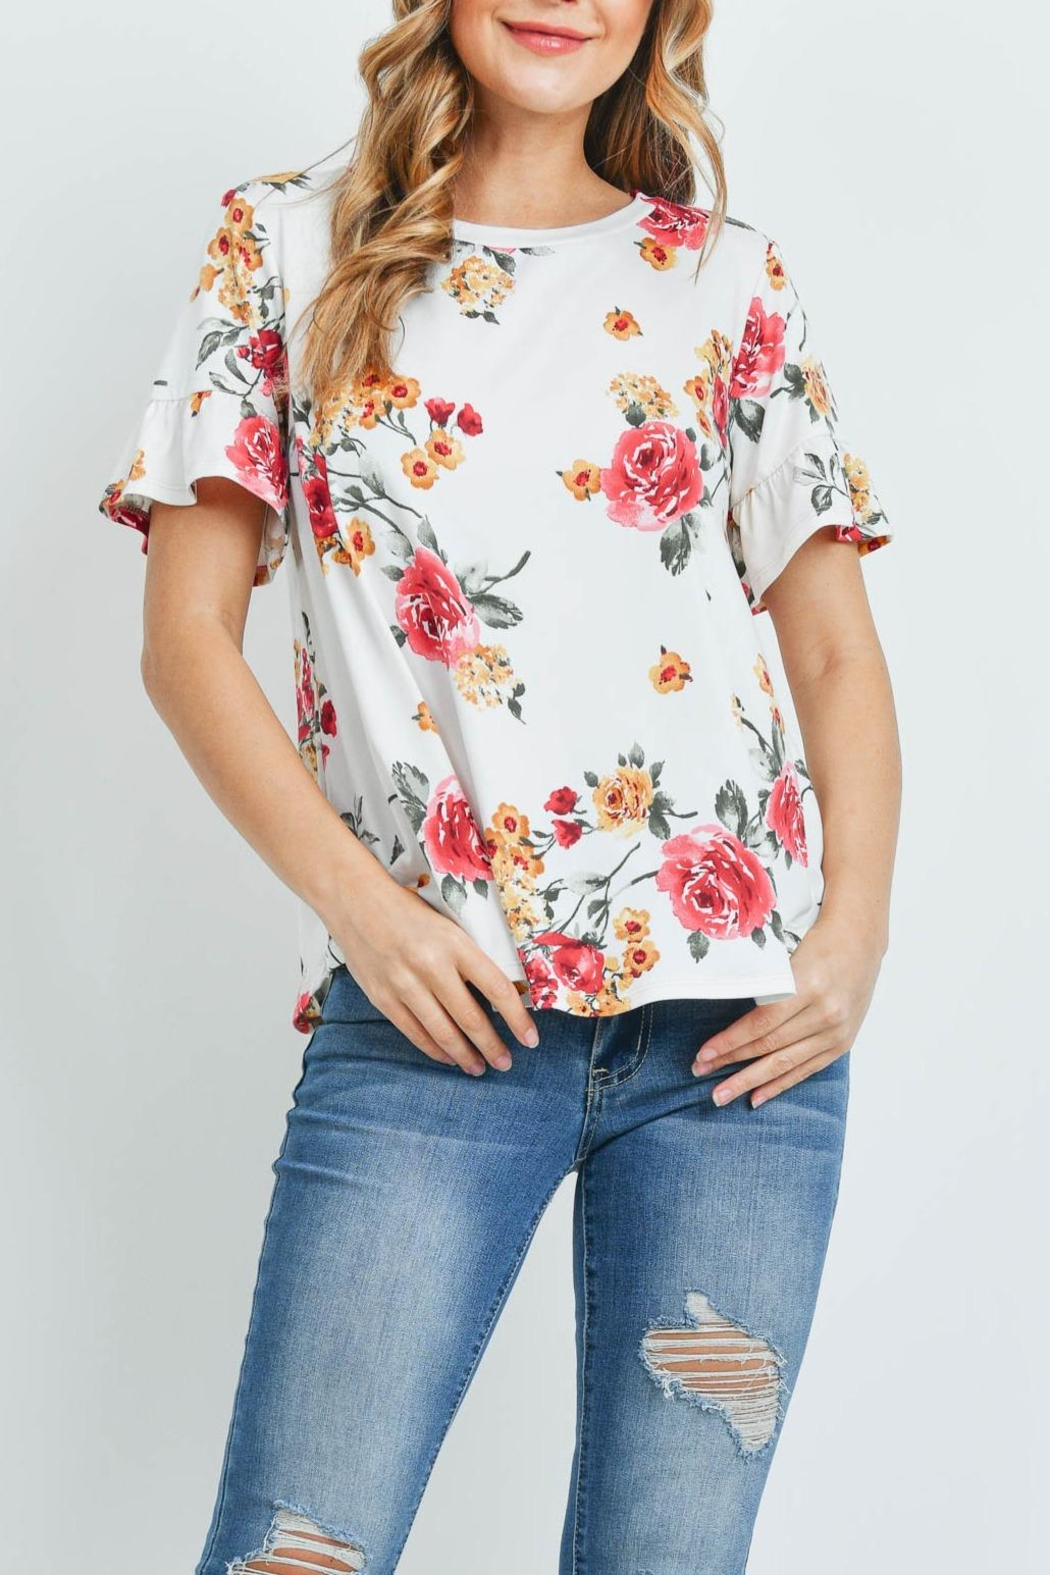 Riah Fashion Short-Sleeve-Floral-Print-Top - Front Cropped Image